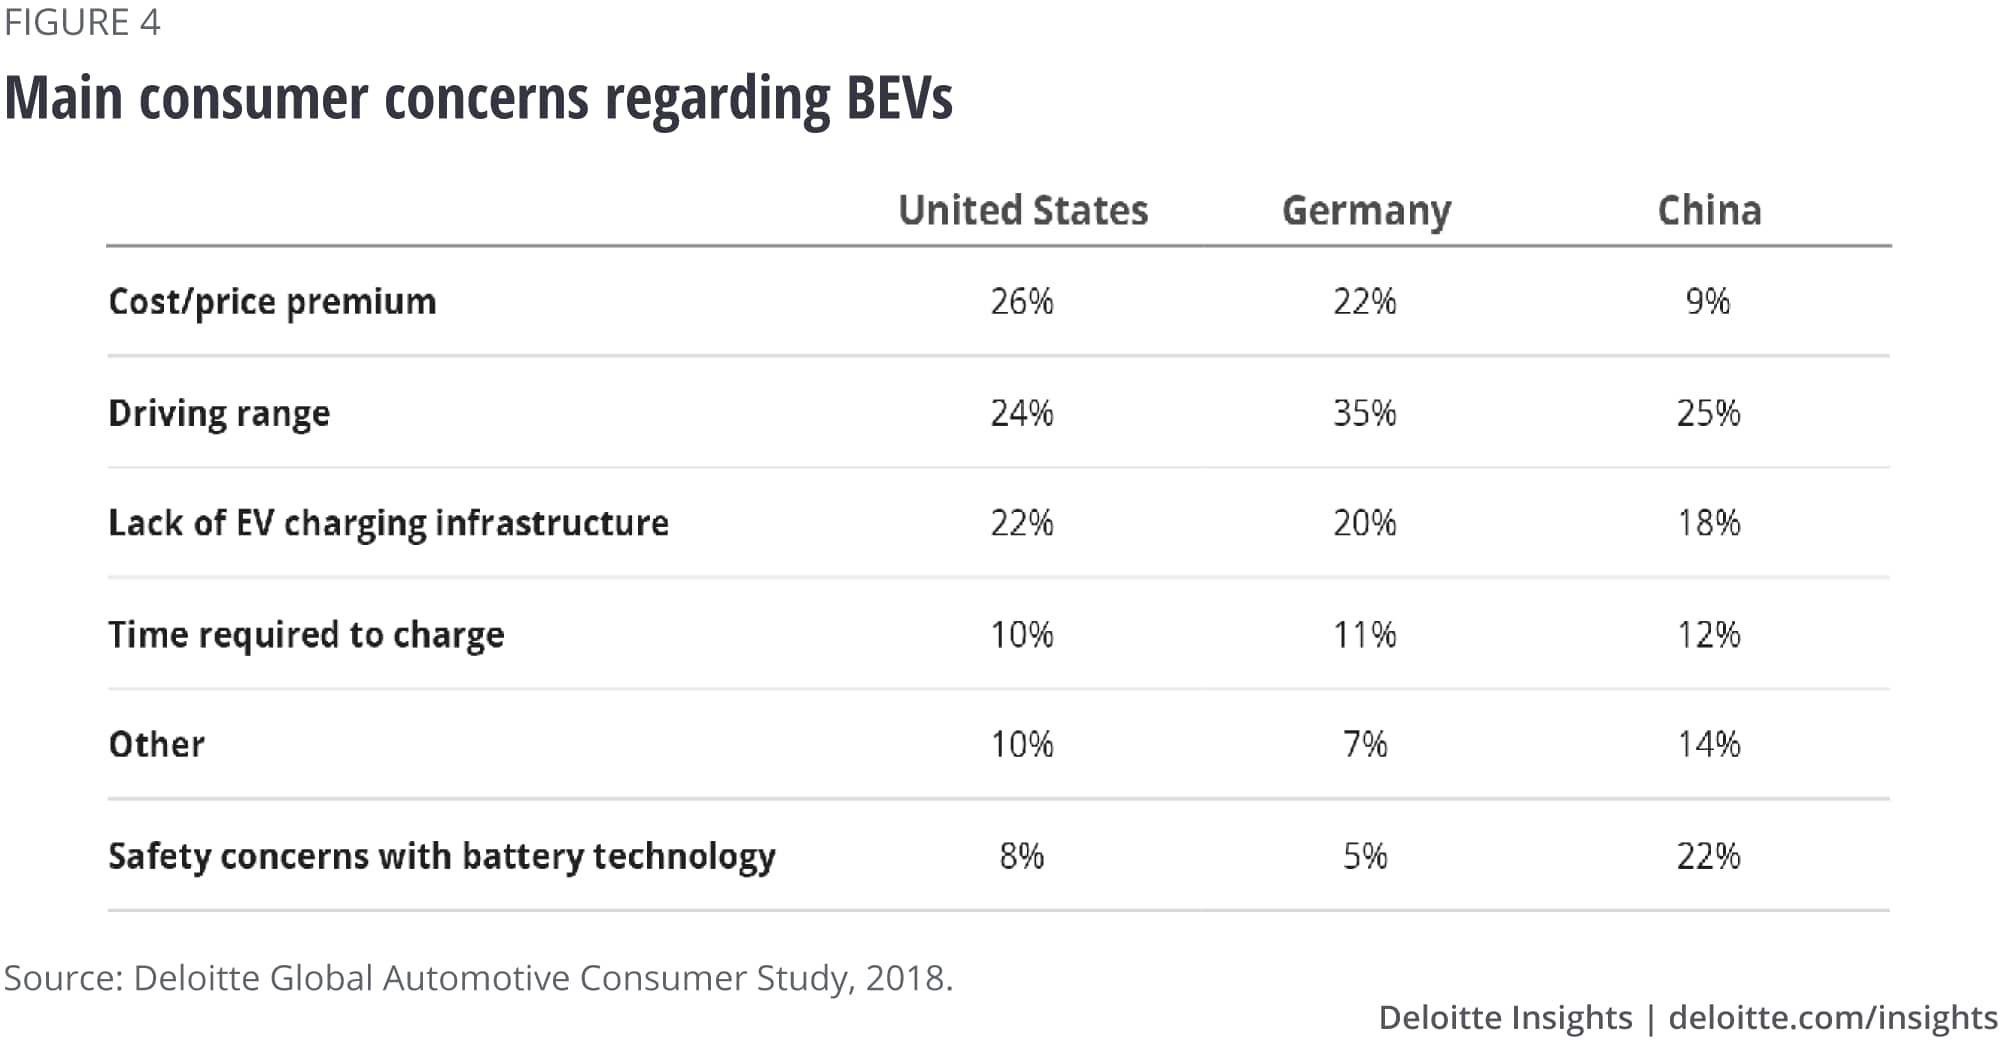 Main consumer concerns regarding BEVs